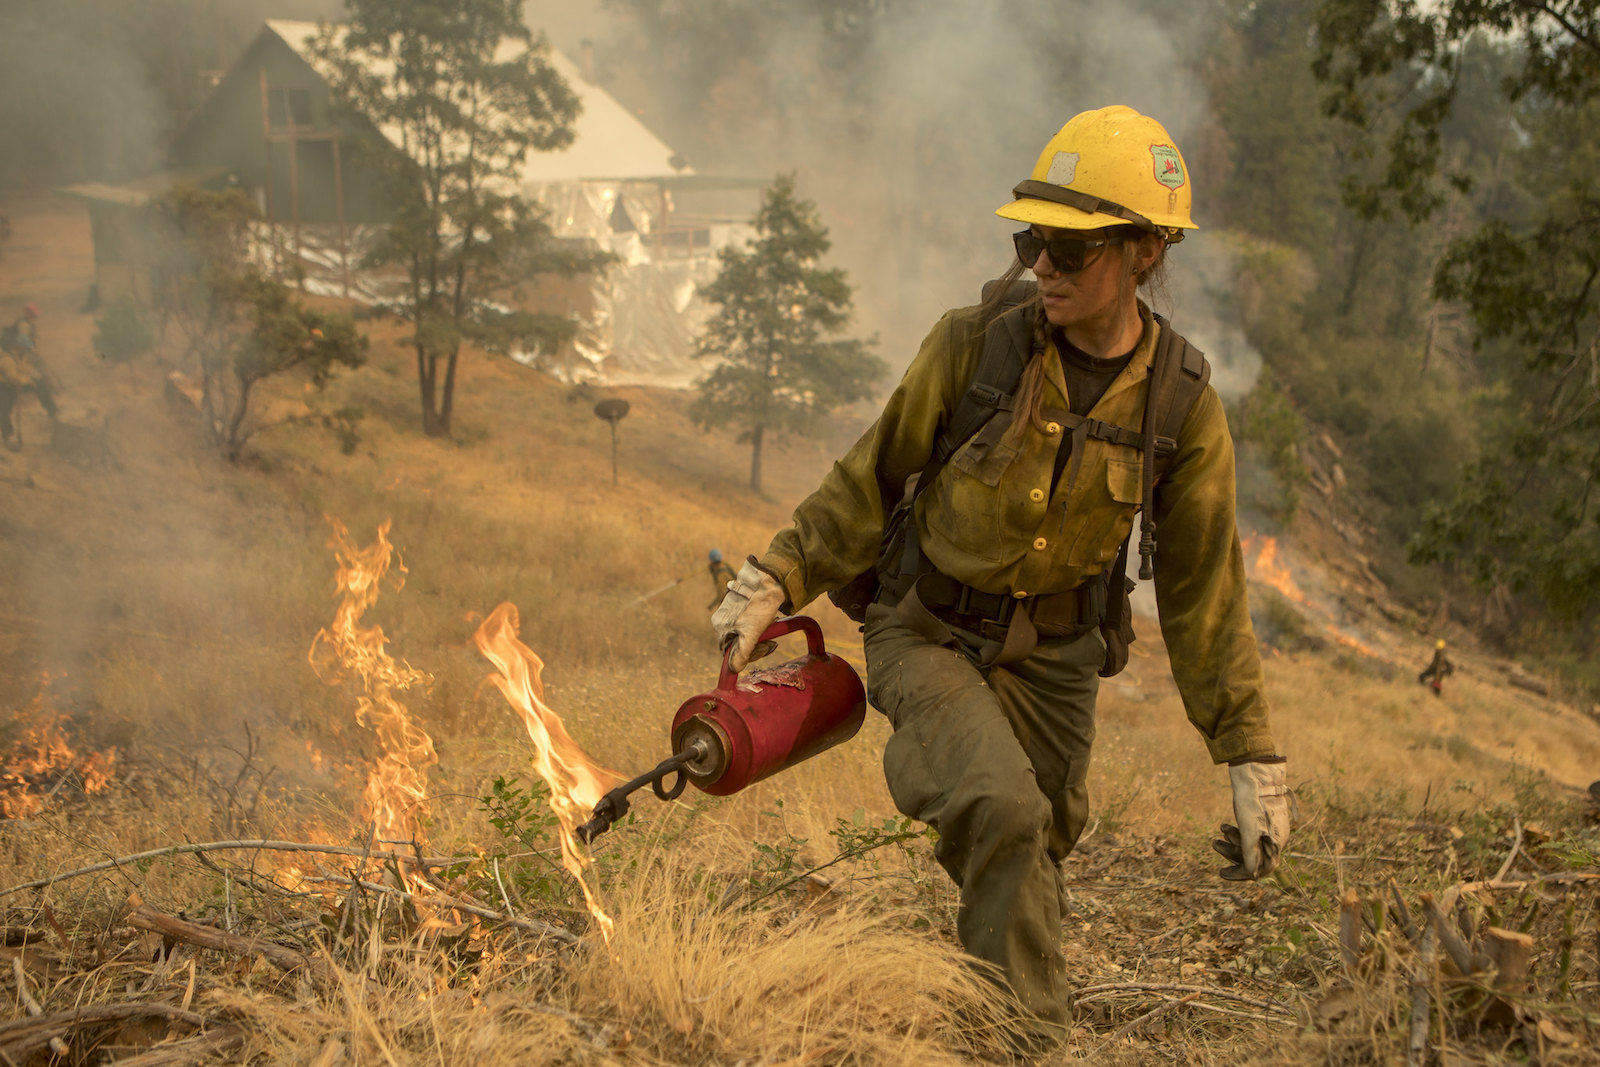 a wildland firefighter in a yellow hat and fire gear holds a red can as she walks through a dry field during a controlled burn